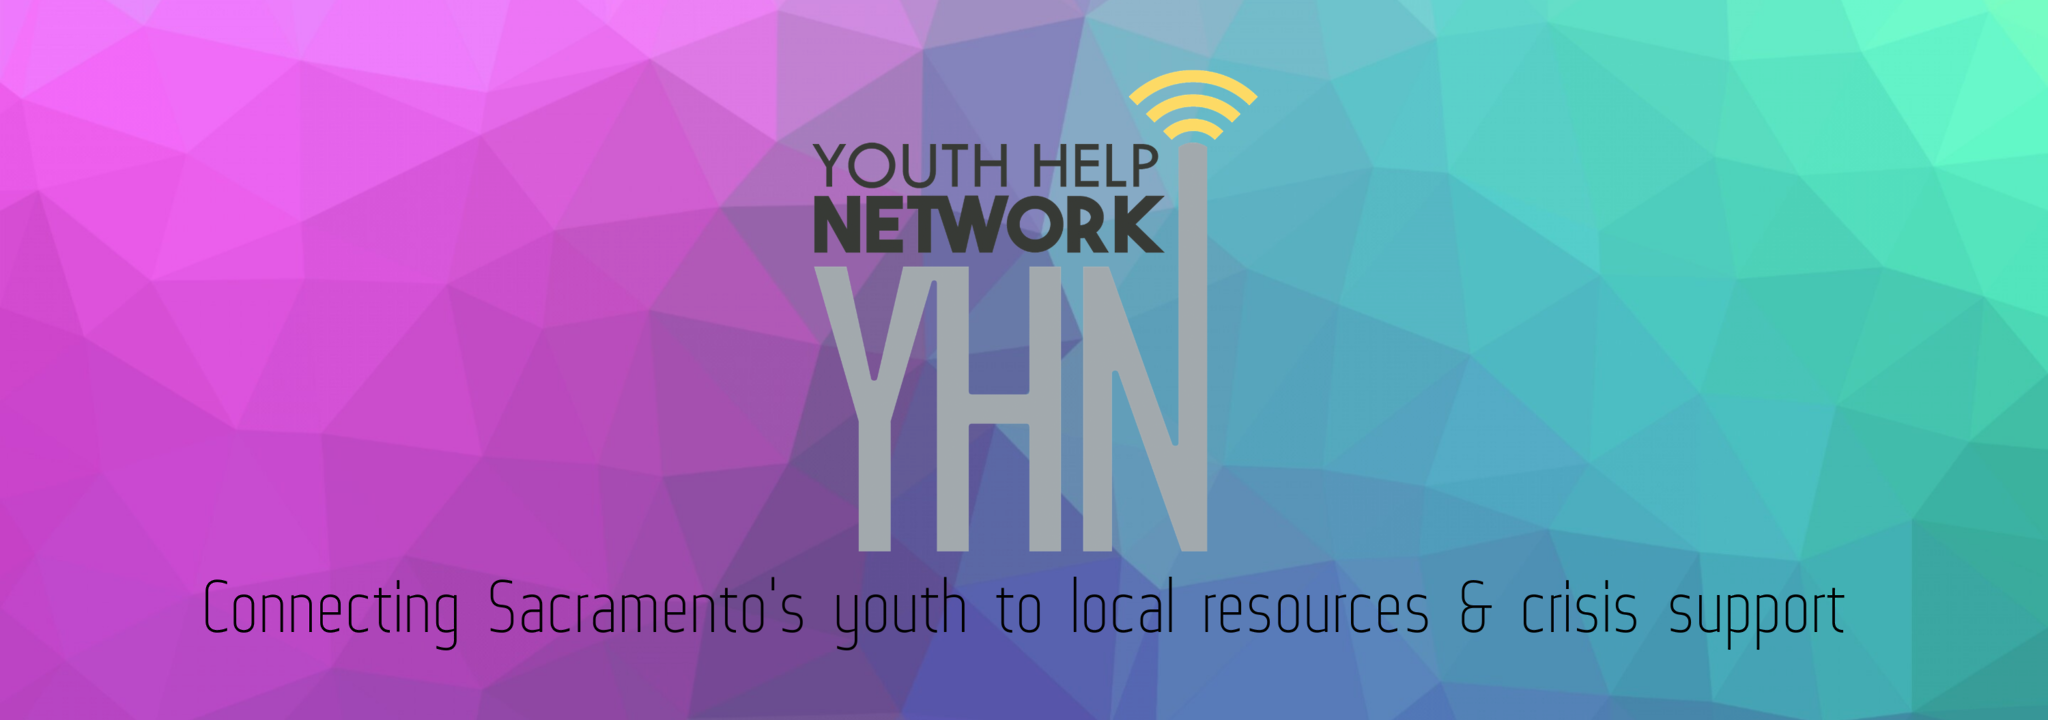 youth help network logo